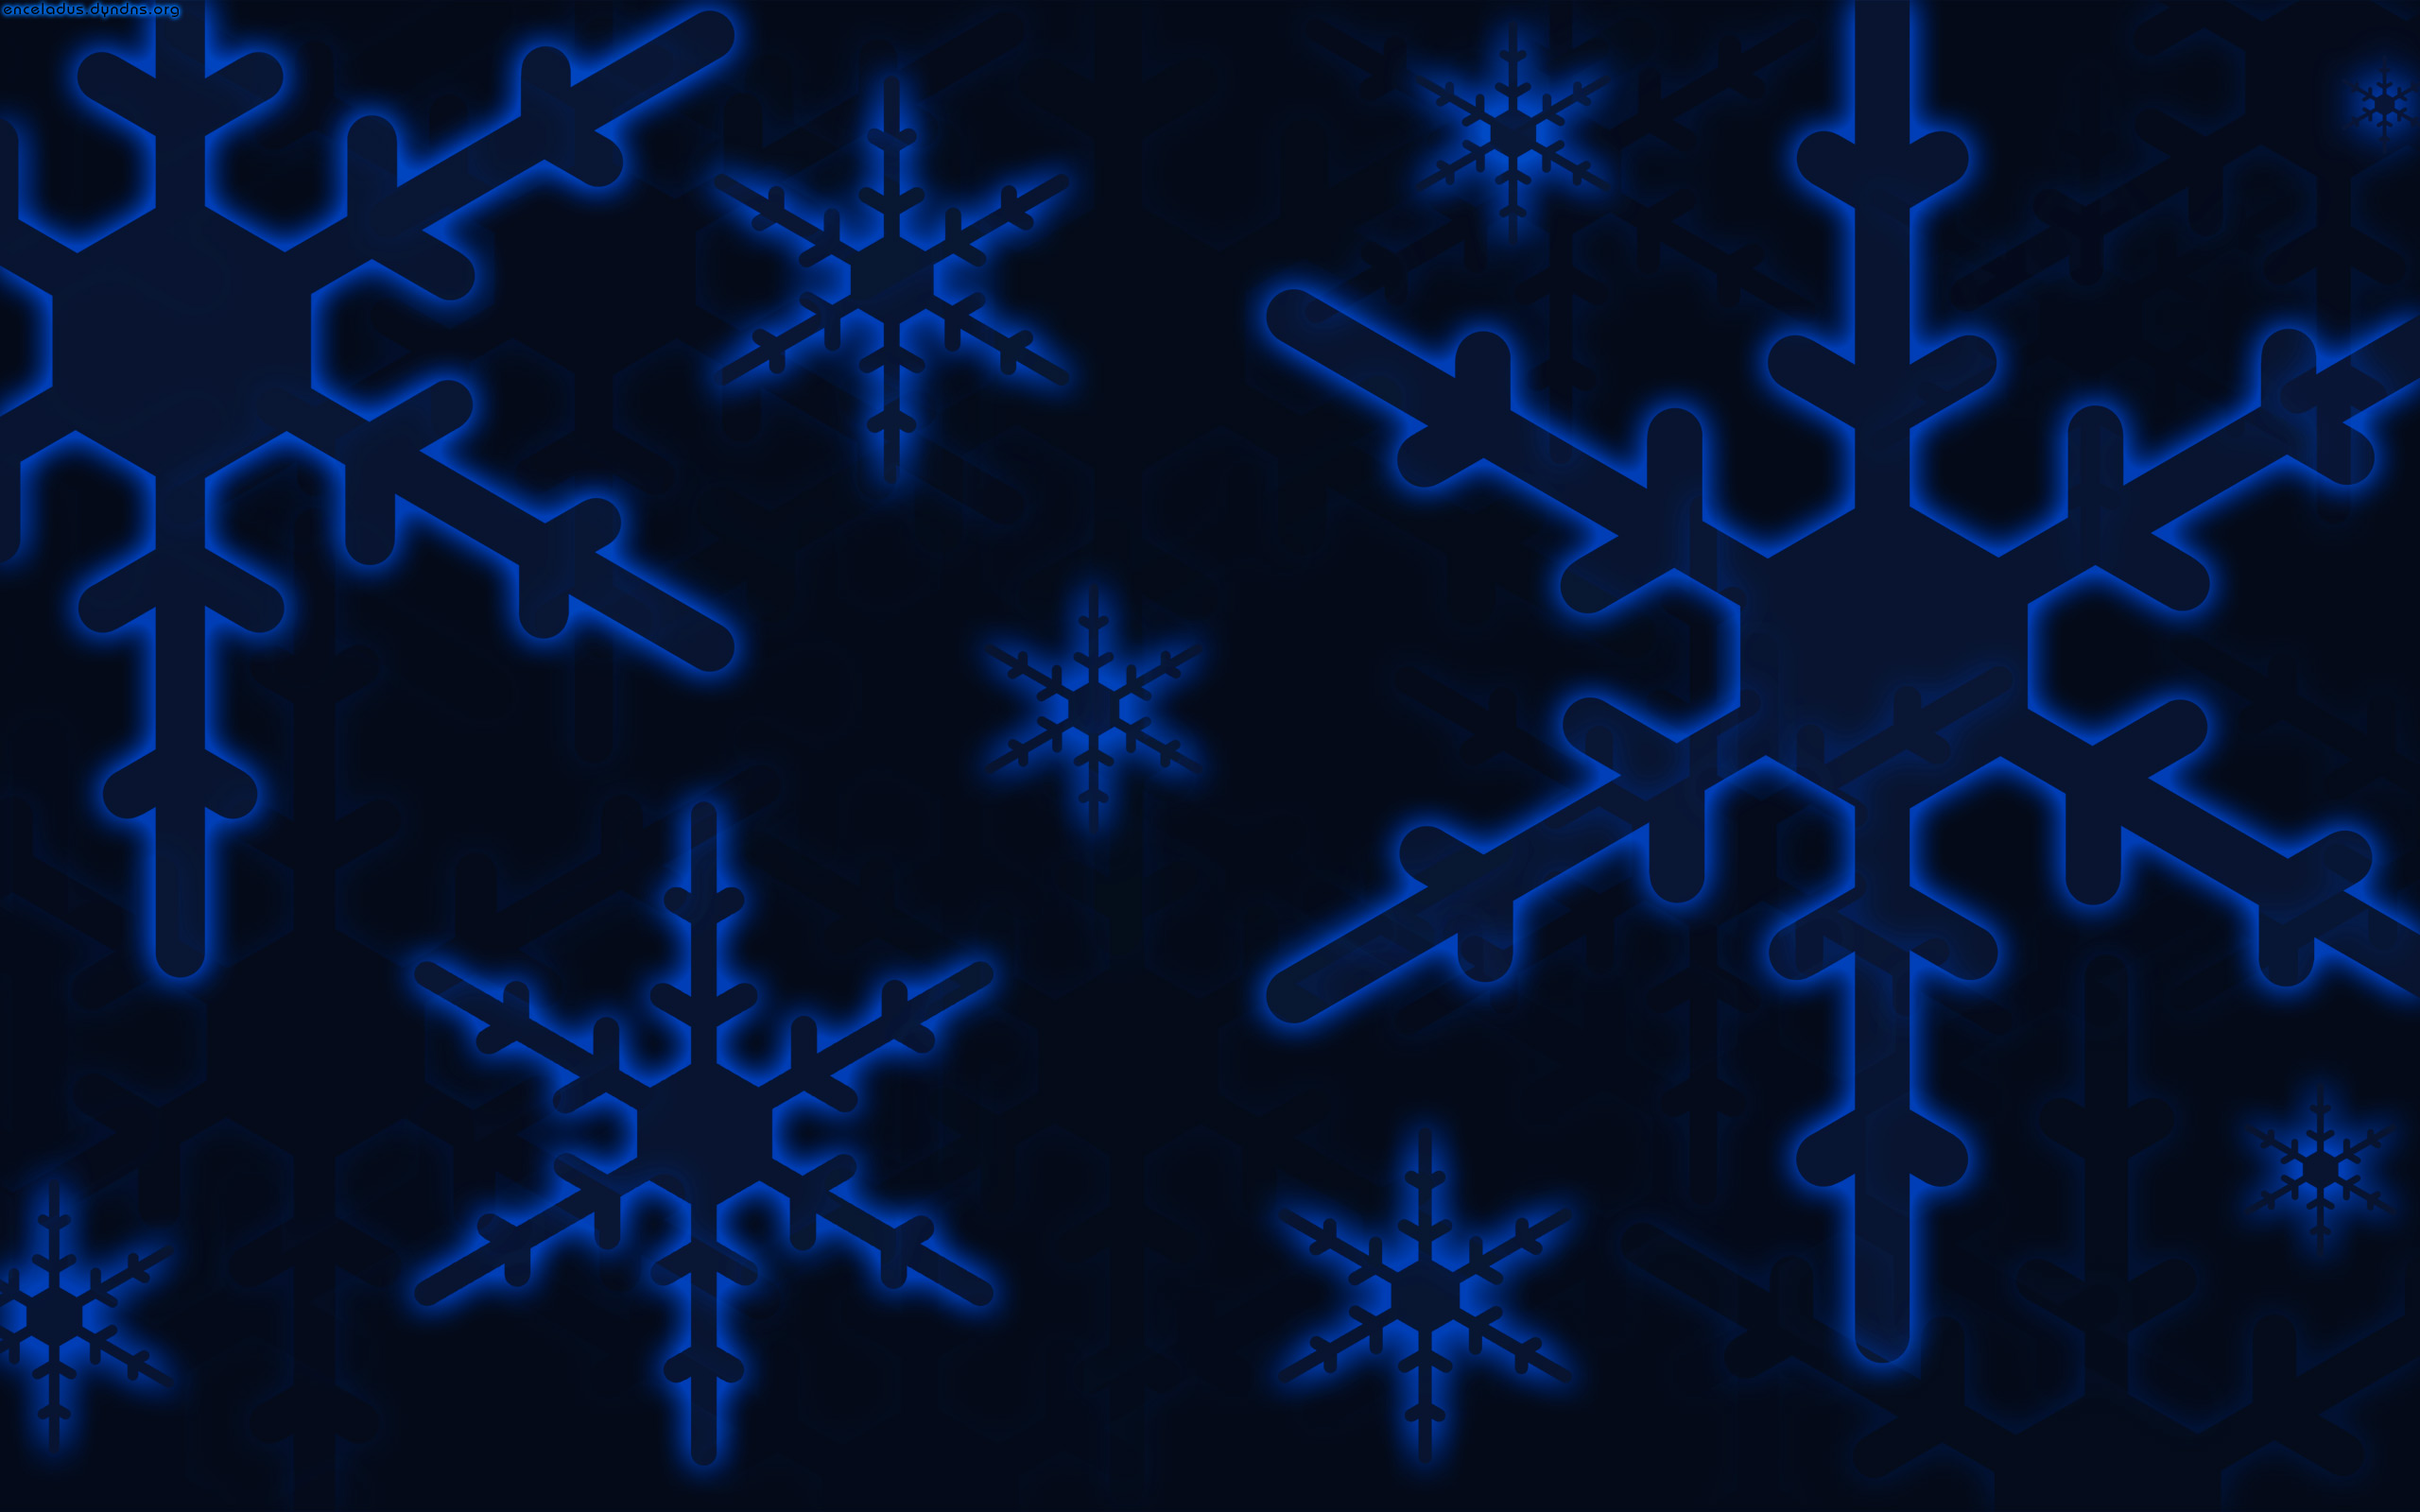 snow flakes black background hd wallpaper